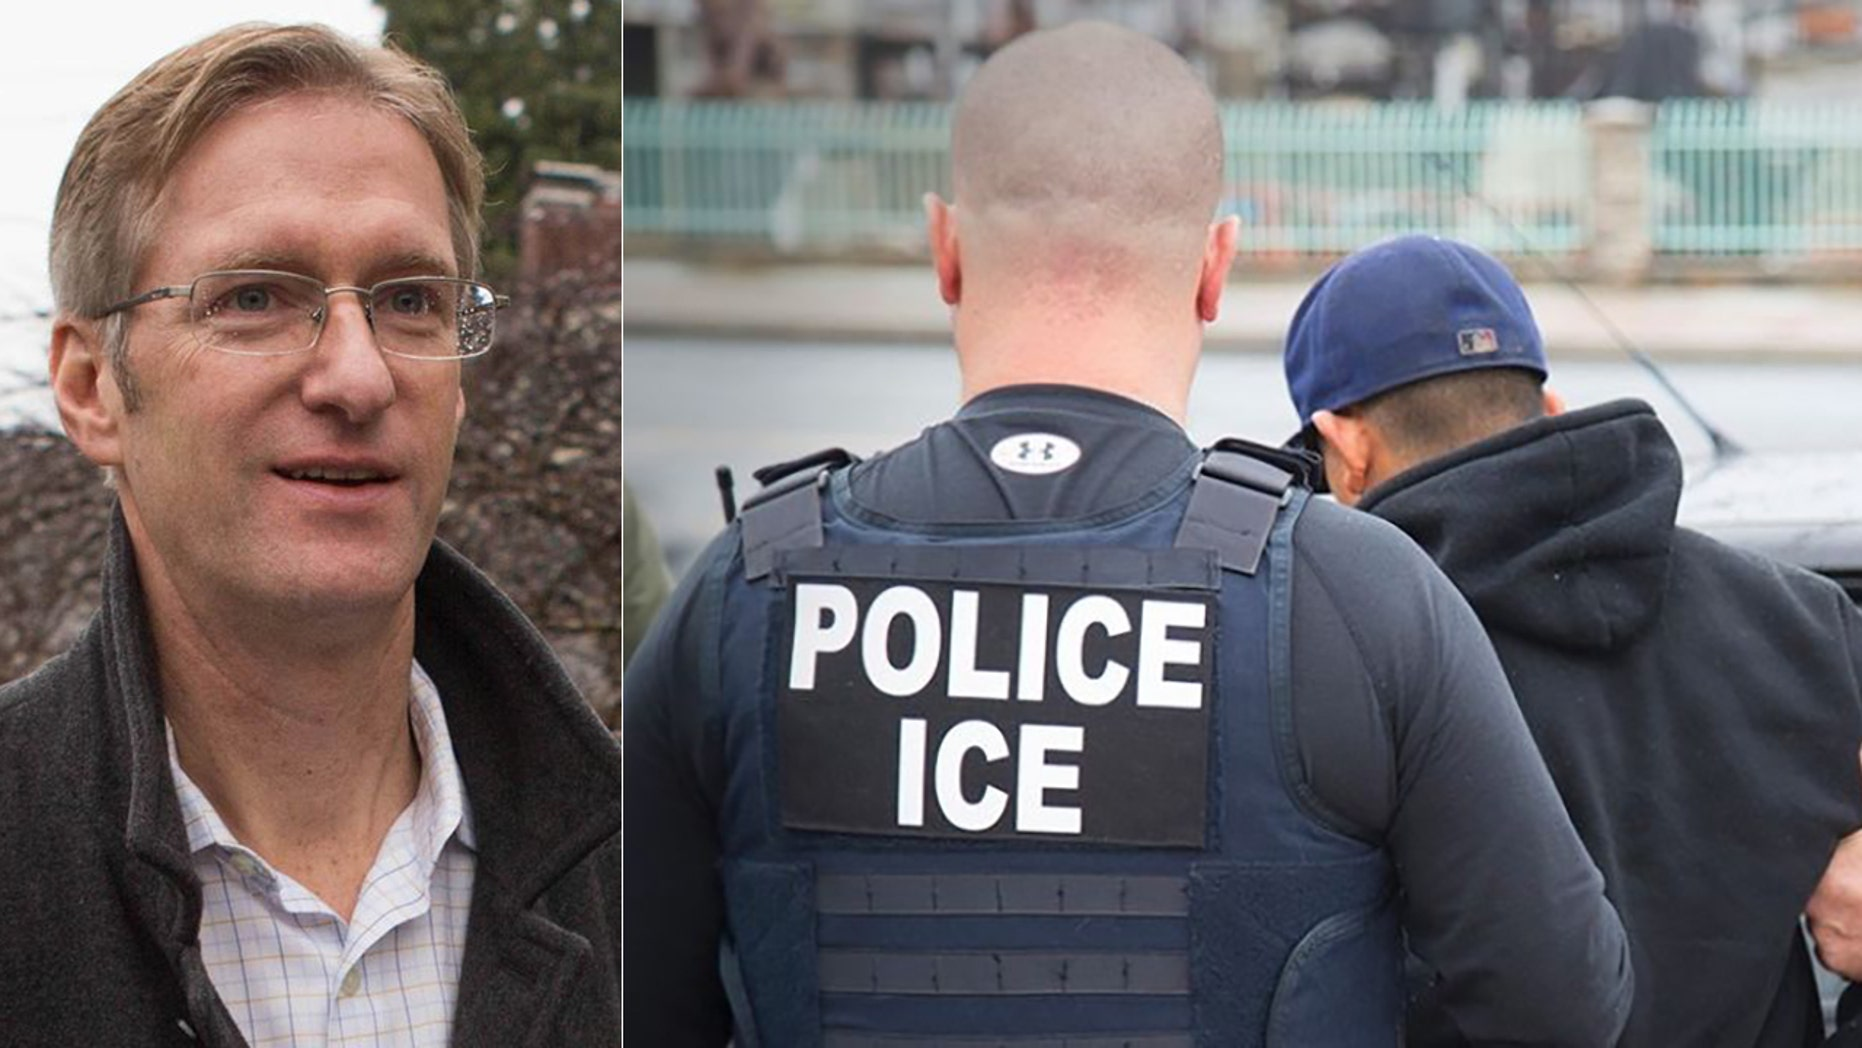 Portland, Ore. Mayor Ted Wheeler was blasted by ICE agents.